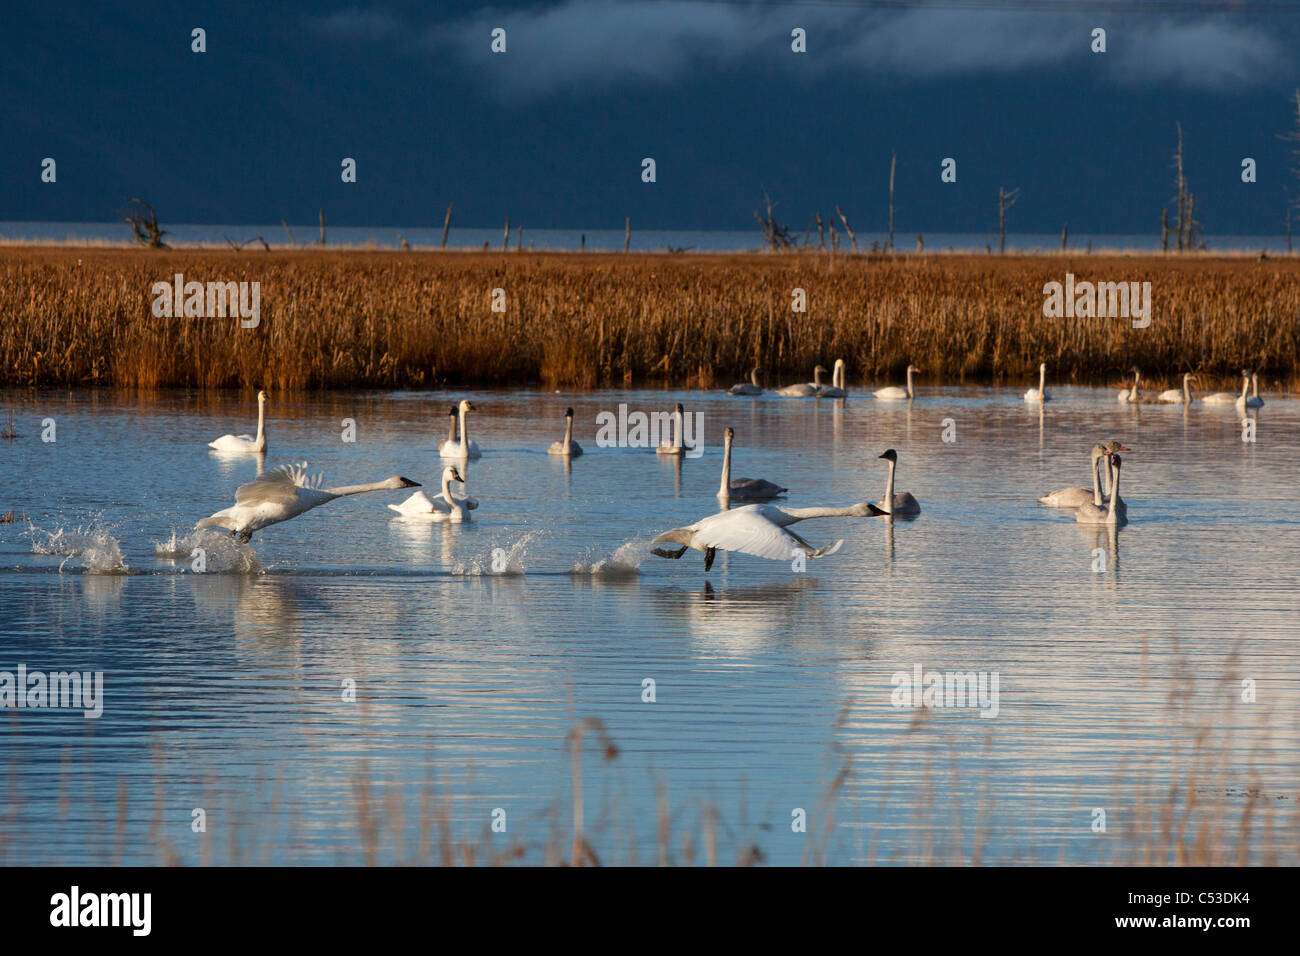 A pair of Trumpeter Swans take off from a pond near Girdwood while a group of swans swim in the background, Alaska Stock Photo